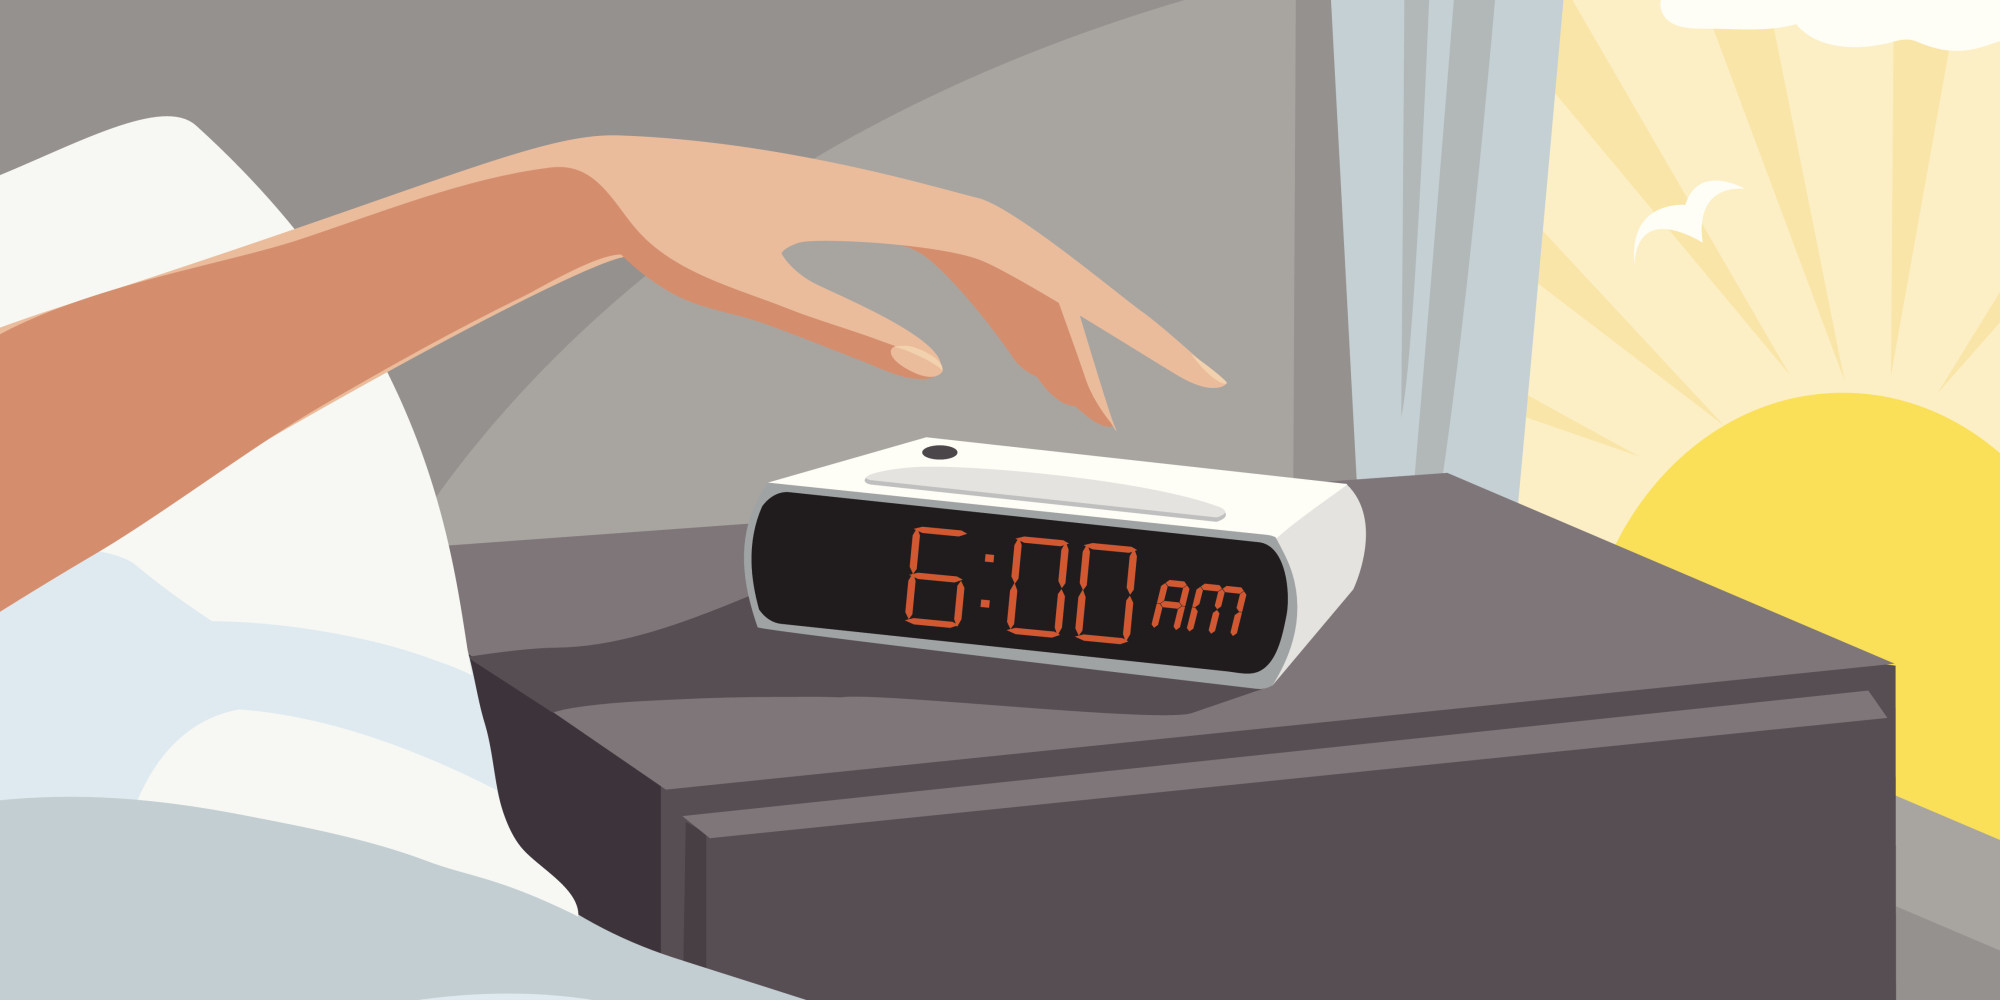 Waking up at 7am clipart image black and white library Free Wake Up, Download Free Clip Art, Free Clip Art on ... image black and white library